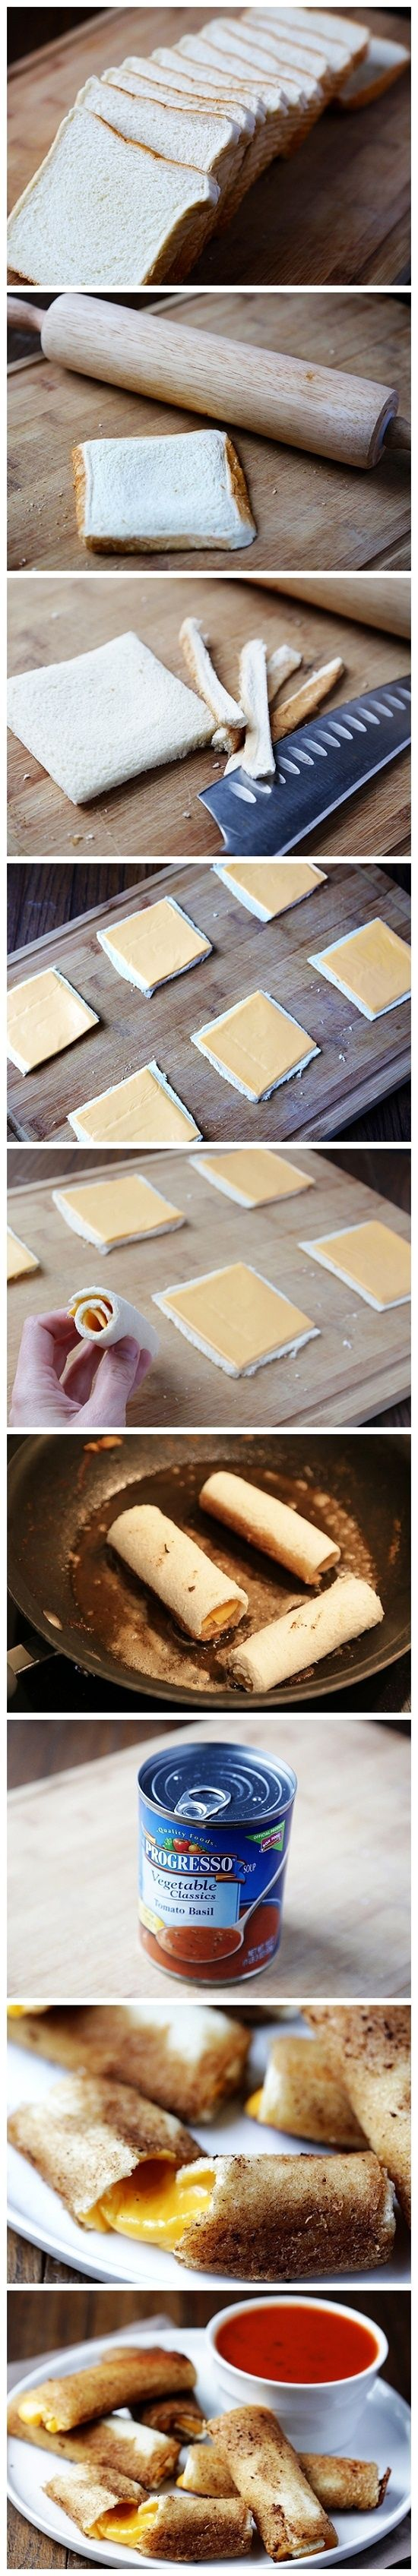 Grilled Cheese Rolls - Super Yummy Recipes | Master forks